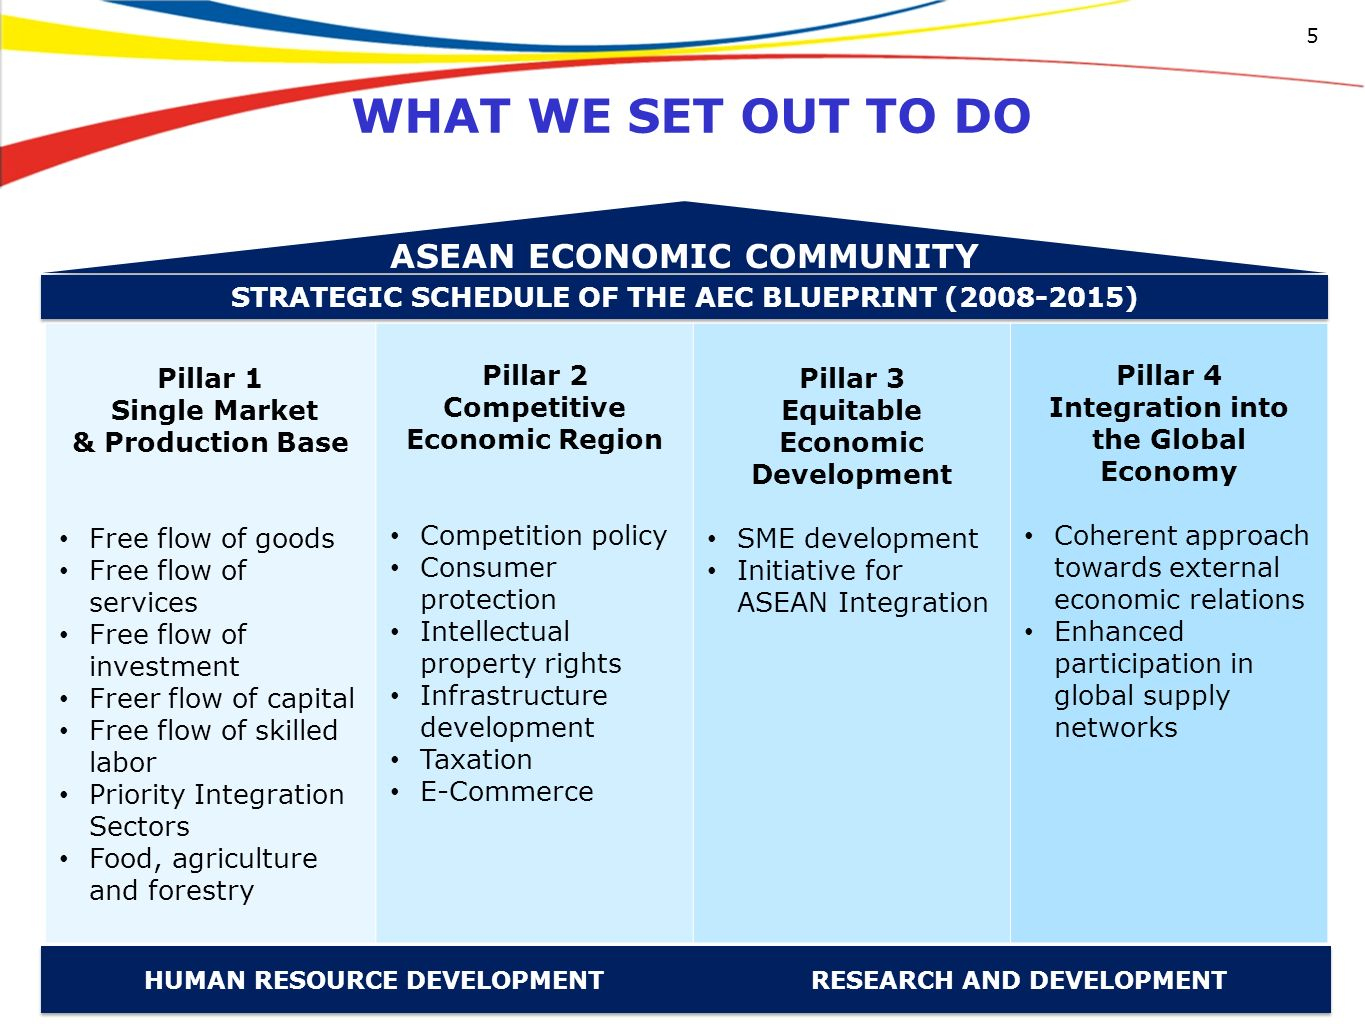 asean economic community 2015 Asean 2015 is fast approaching the implications for taxation are diverse, touching not only upon tax composition, but also revenue, redistribution and repricing, and the representation of and re by obiter dictum in types  school work, taxation, and asean.